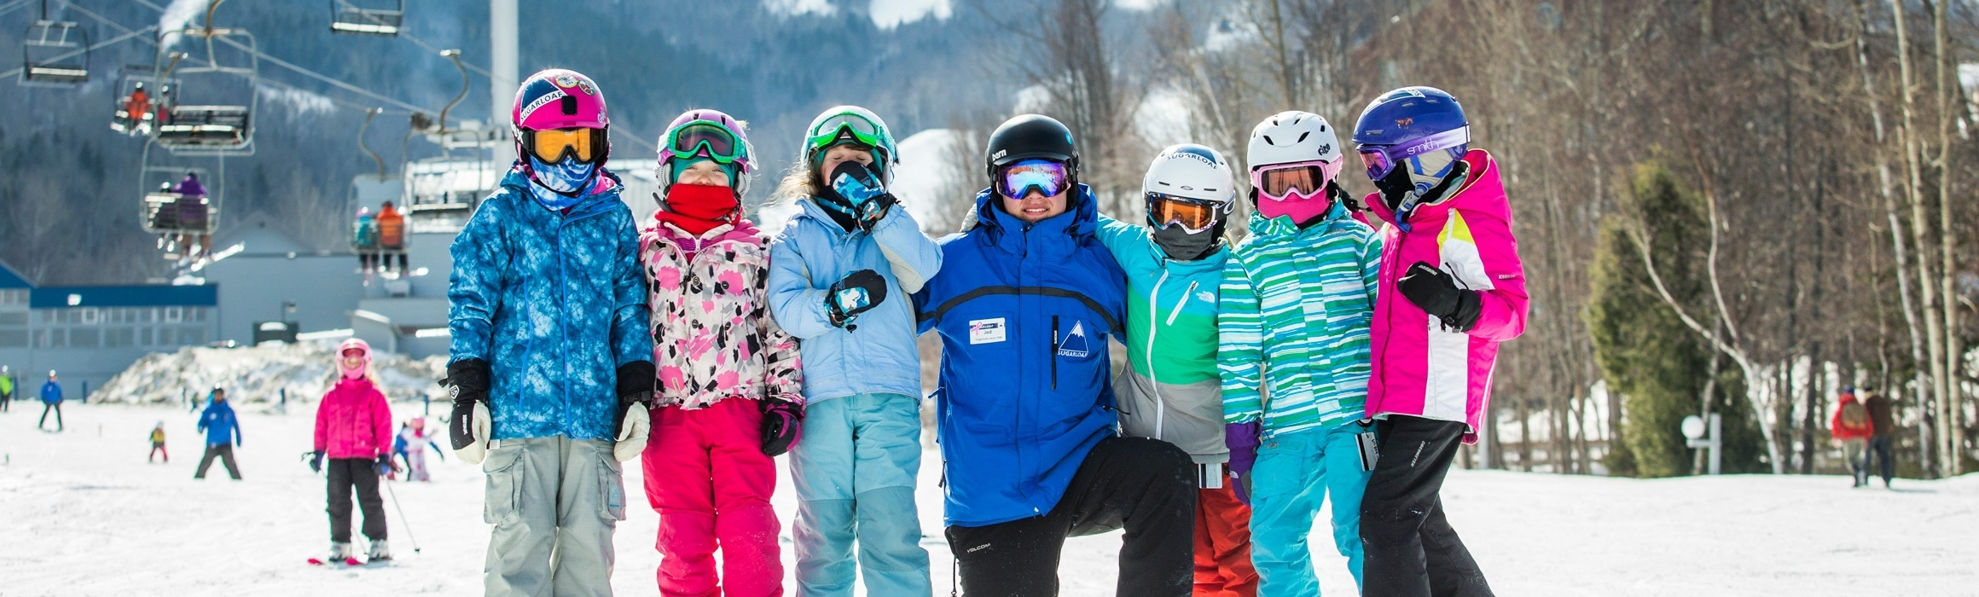 Picture of Mountain Adventure Ski Like A Girl Camp